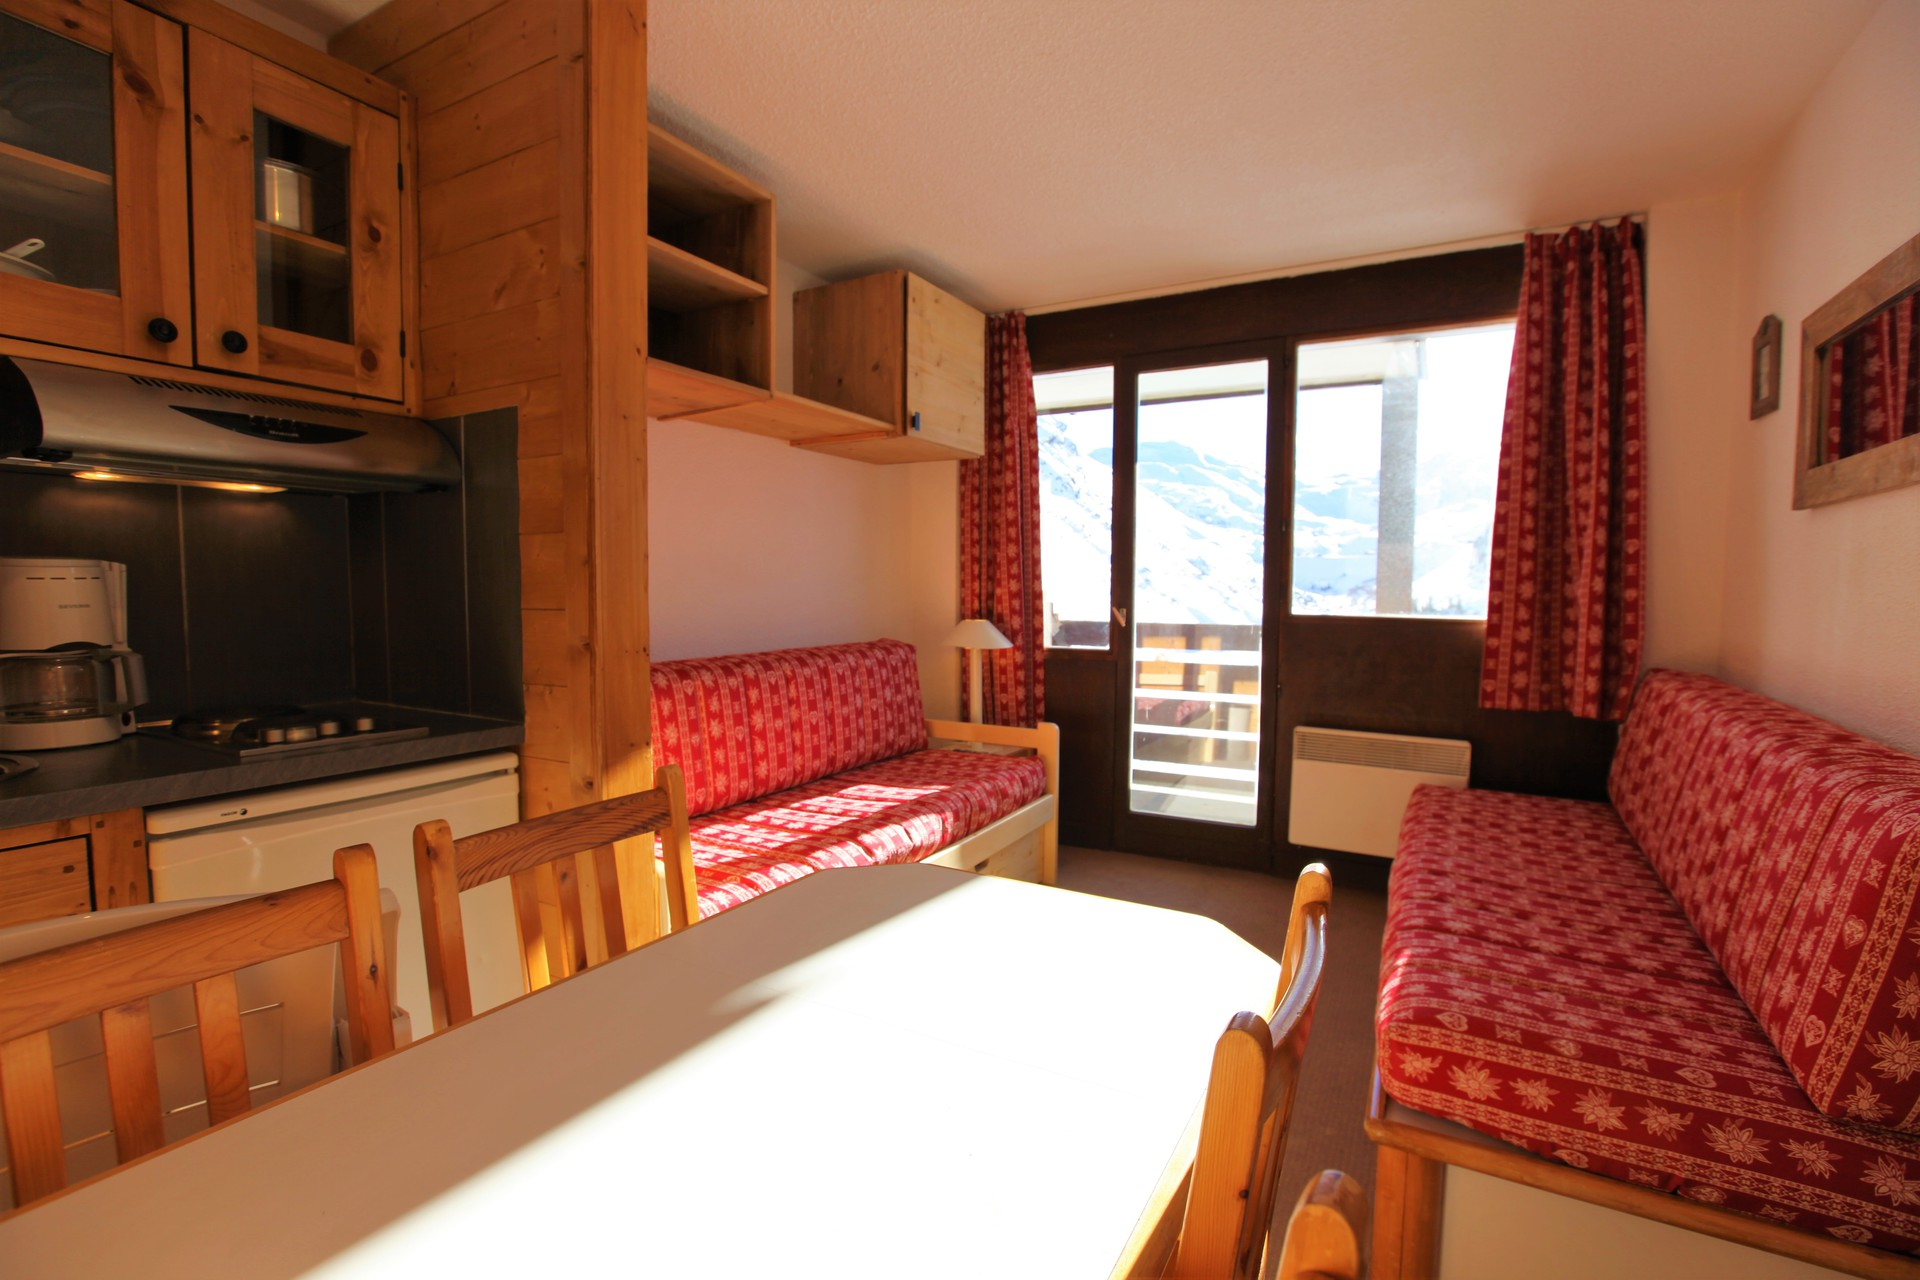 Rent a Studio at Avoriaz